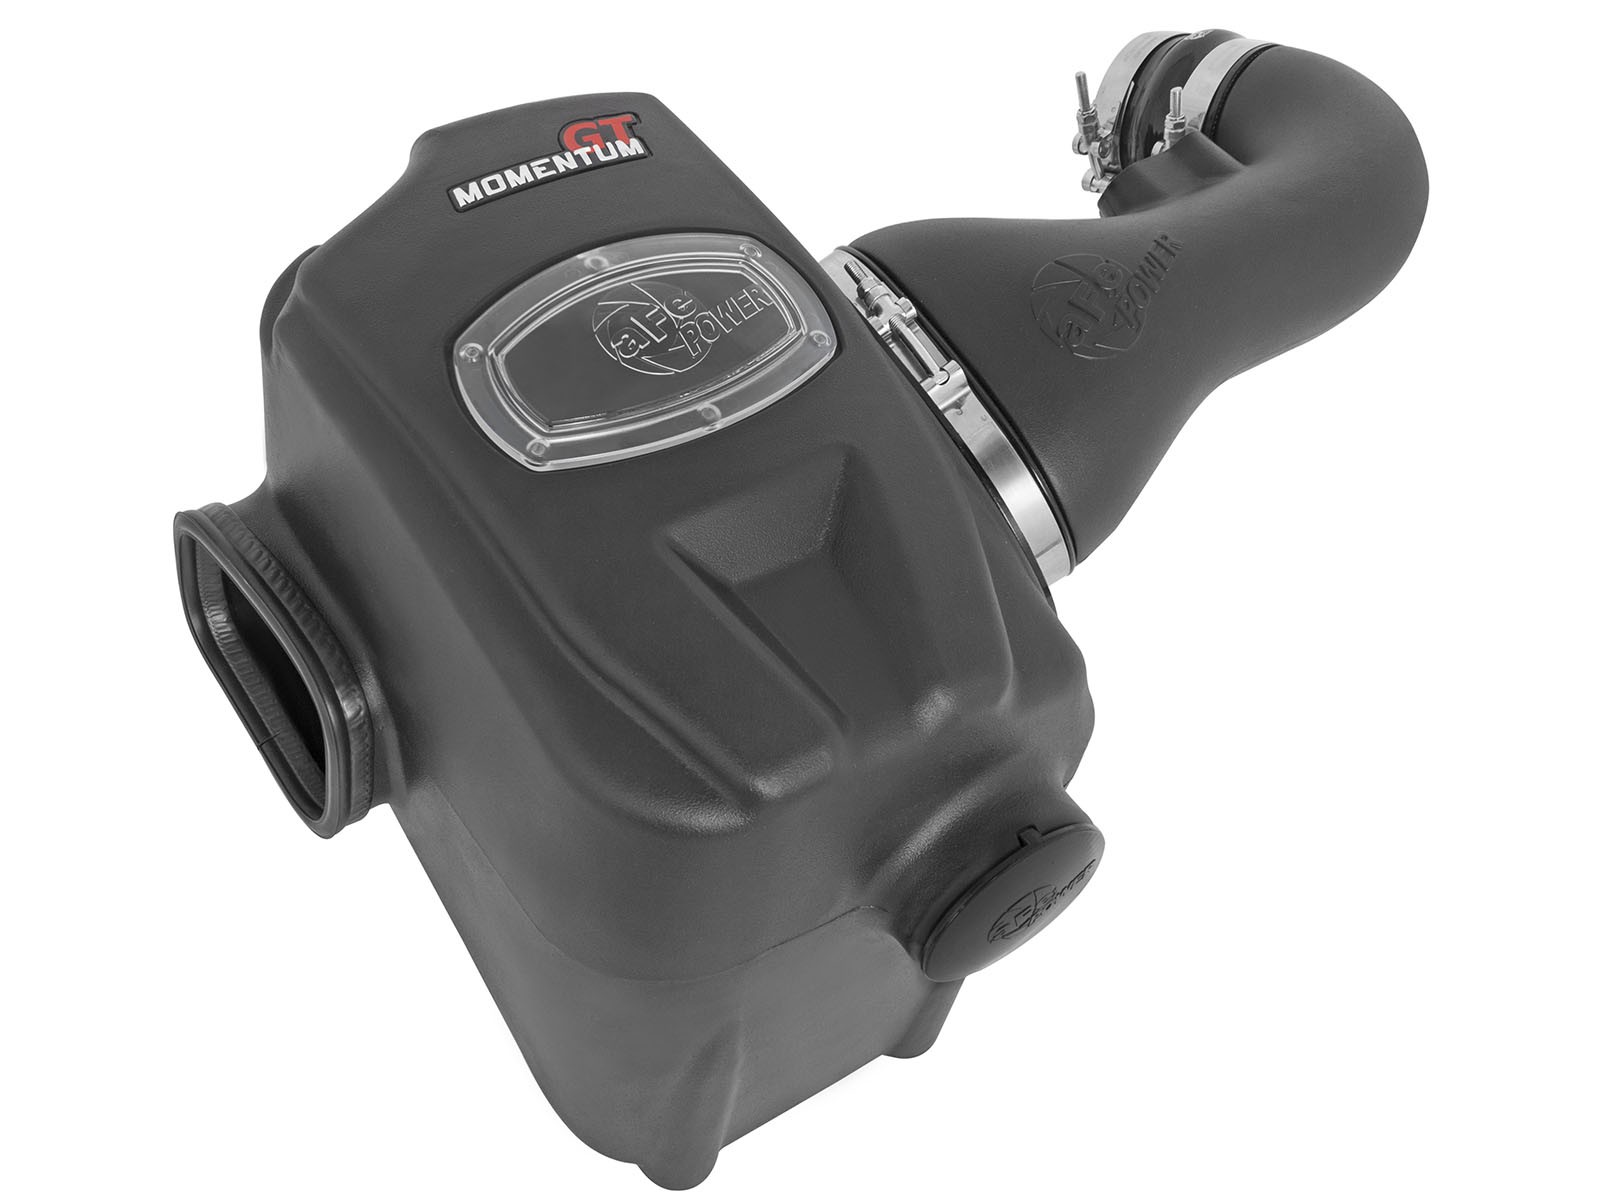 Momentum GT Pro DRY S Cold Air Intake System | aFe POWER